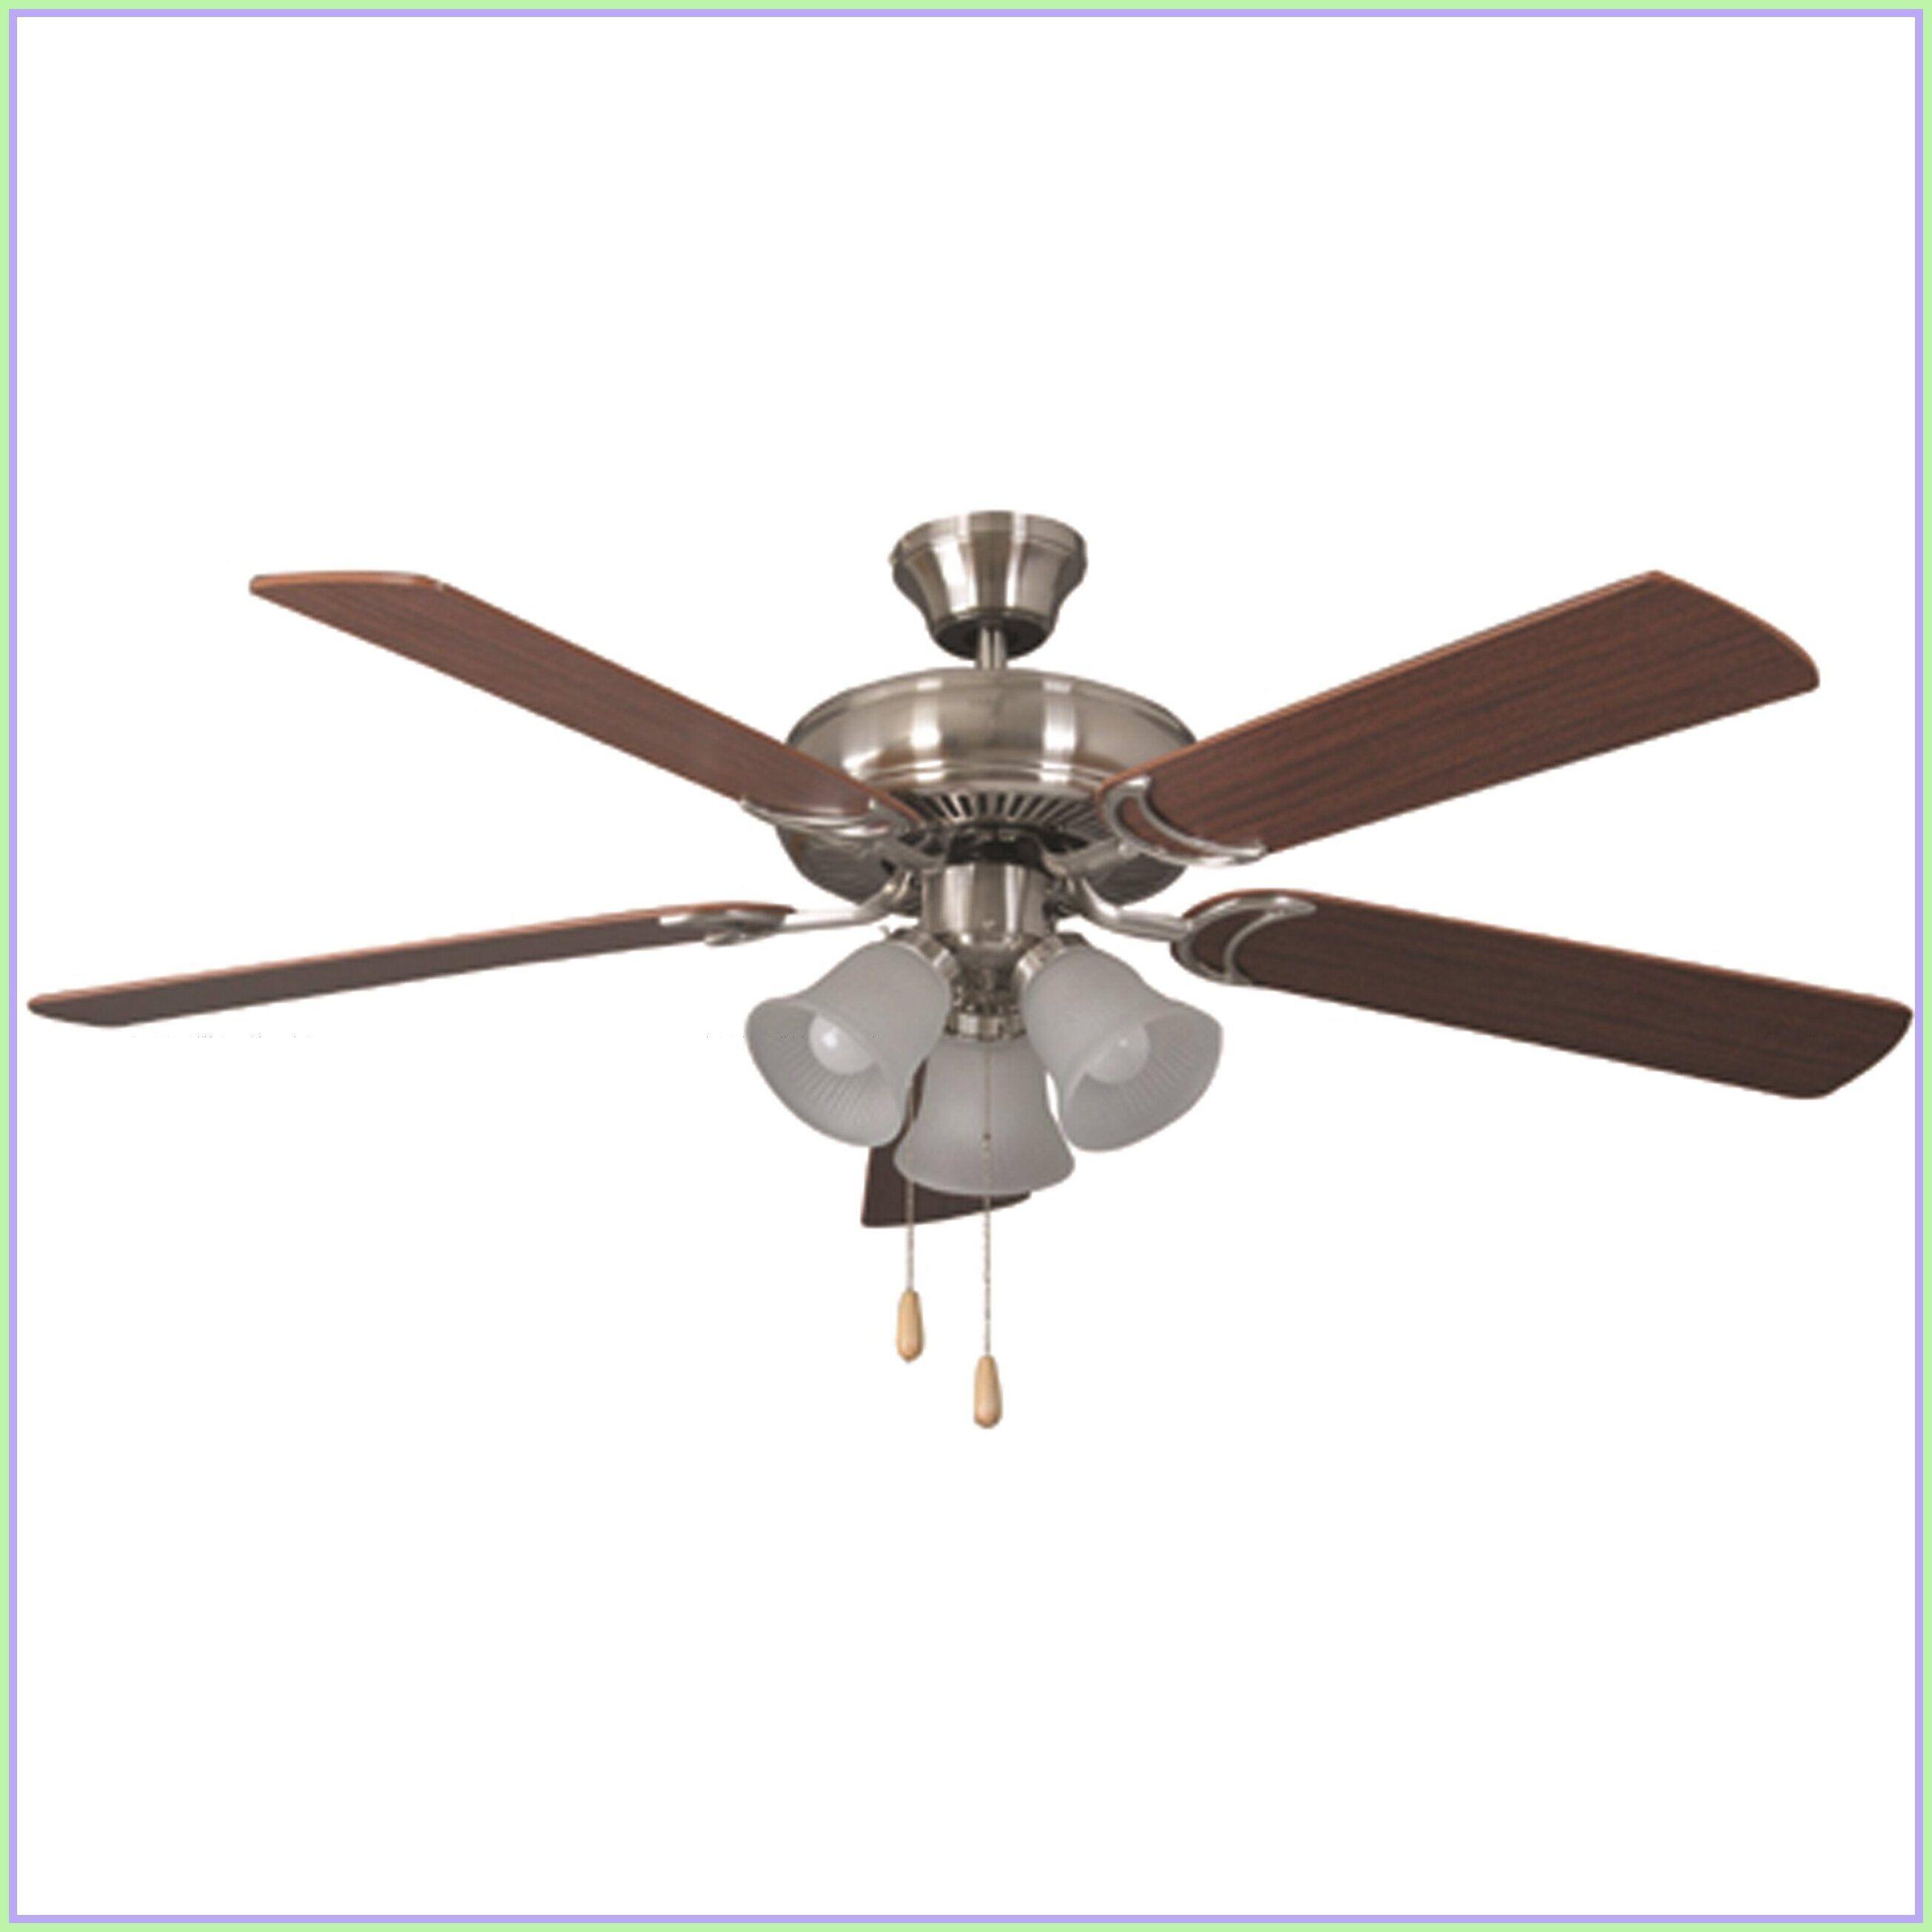 118 Reference Of Ceiling Fan Rustic Dual Blade Ceiling Fan Rustic Ceiling Fan Ceiling Fan Stylish